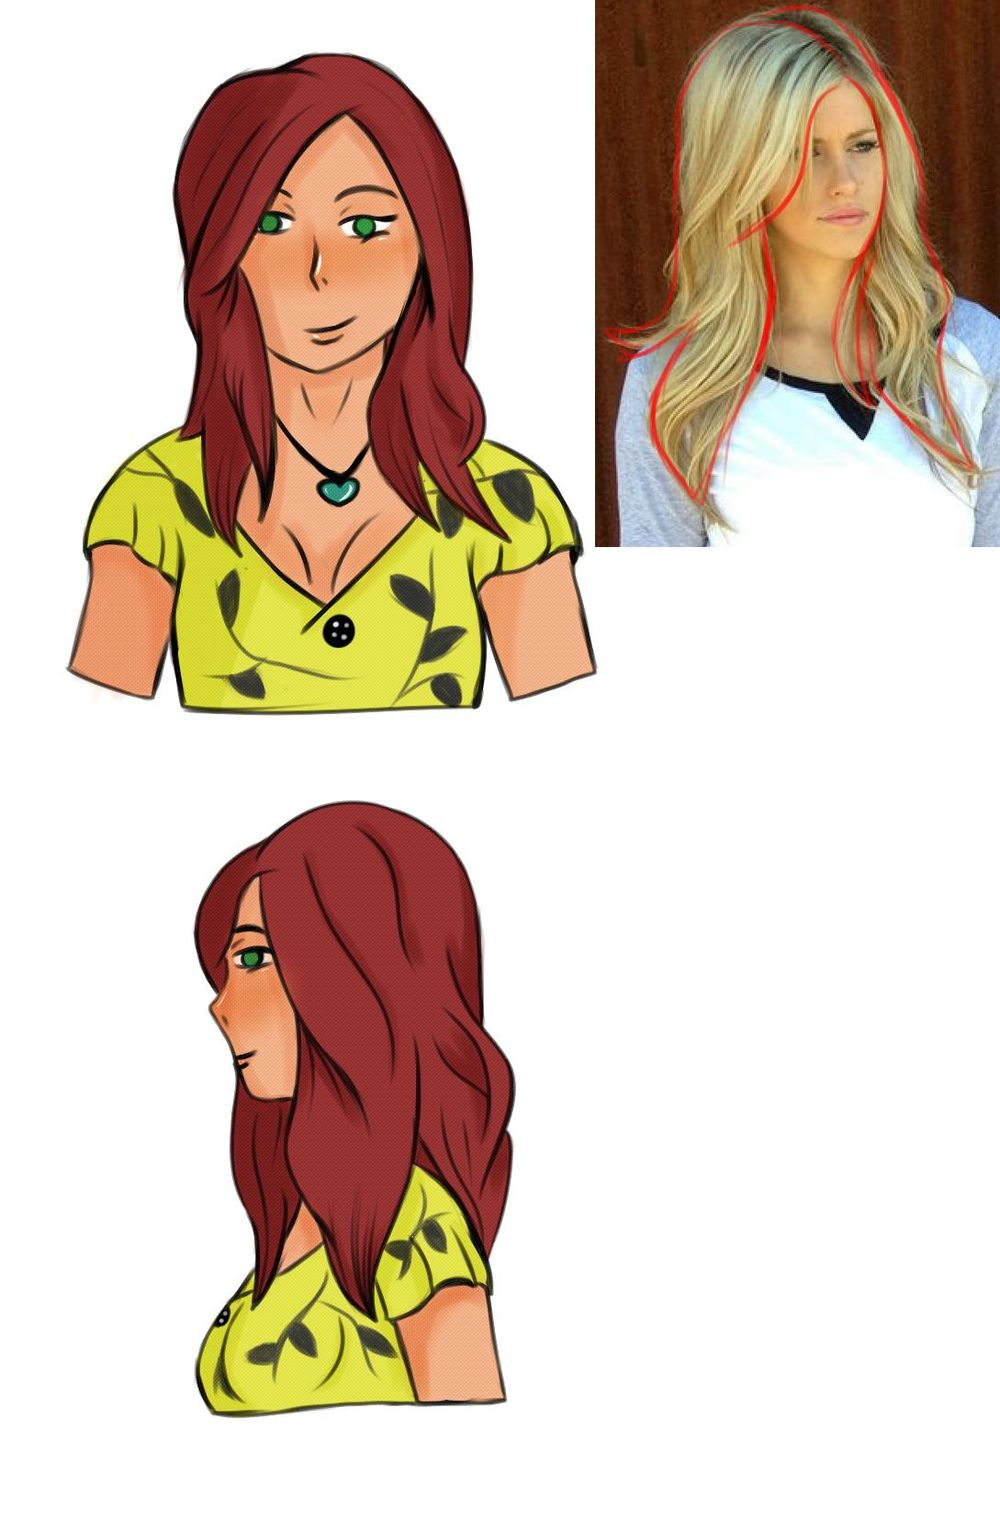 Some Hairstyles - image 2 - student project